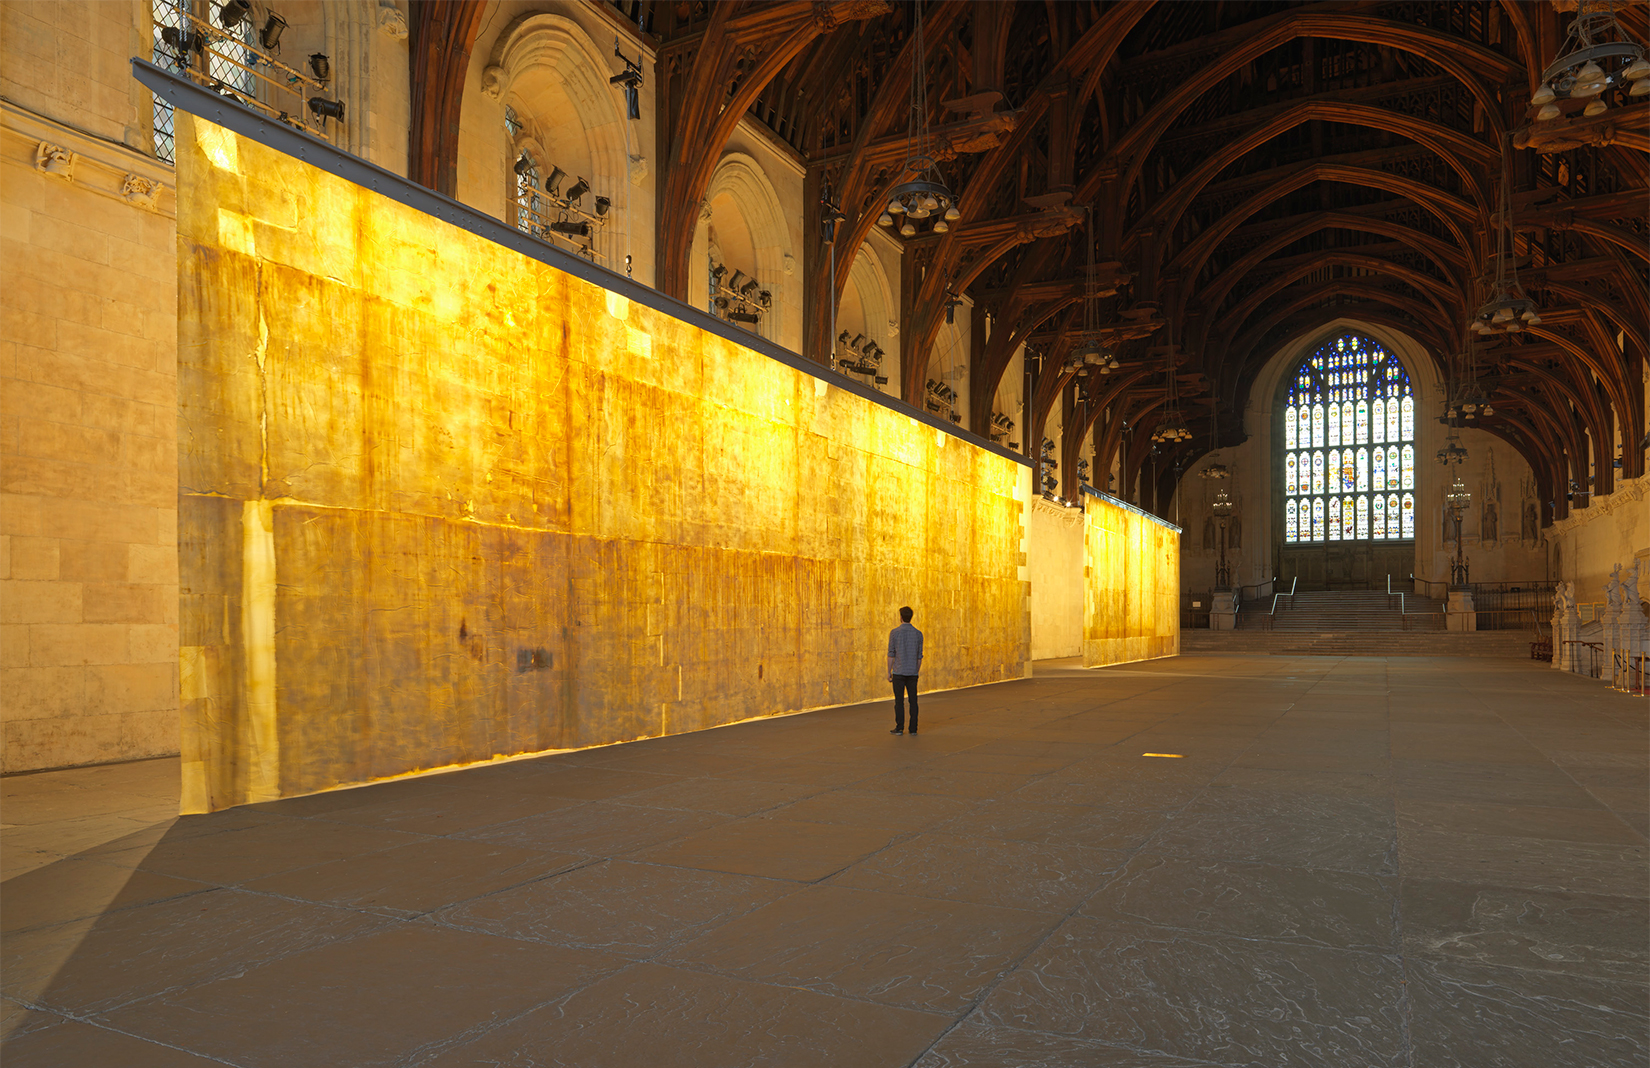 Westminster\'s \'dirt\' becomes art in Jorge Otero-Pailos\' new installation